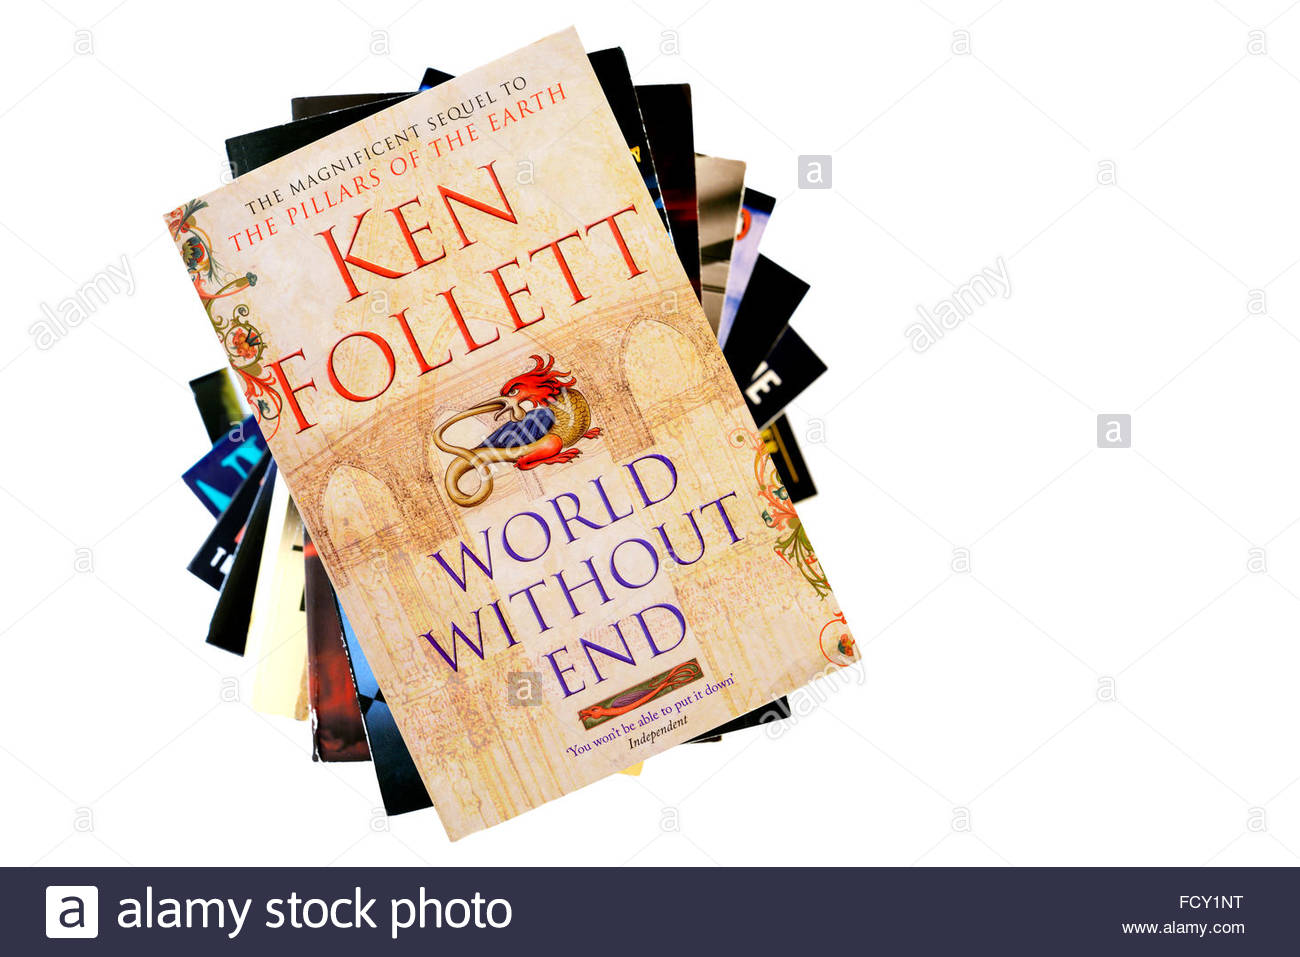 Descargar Libros Ken Follet Ken Follett Imágenes De Stock Ken Follett Fotos De Stock Alamy